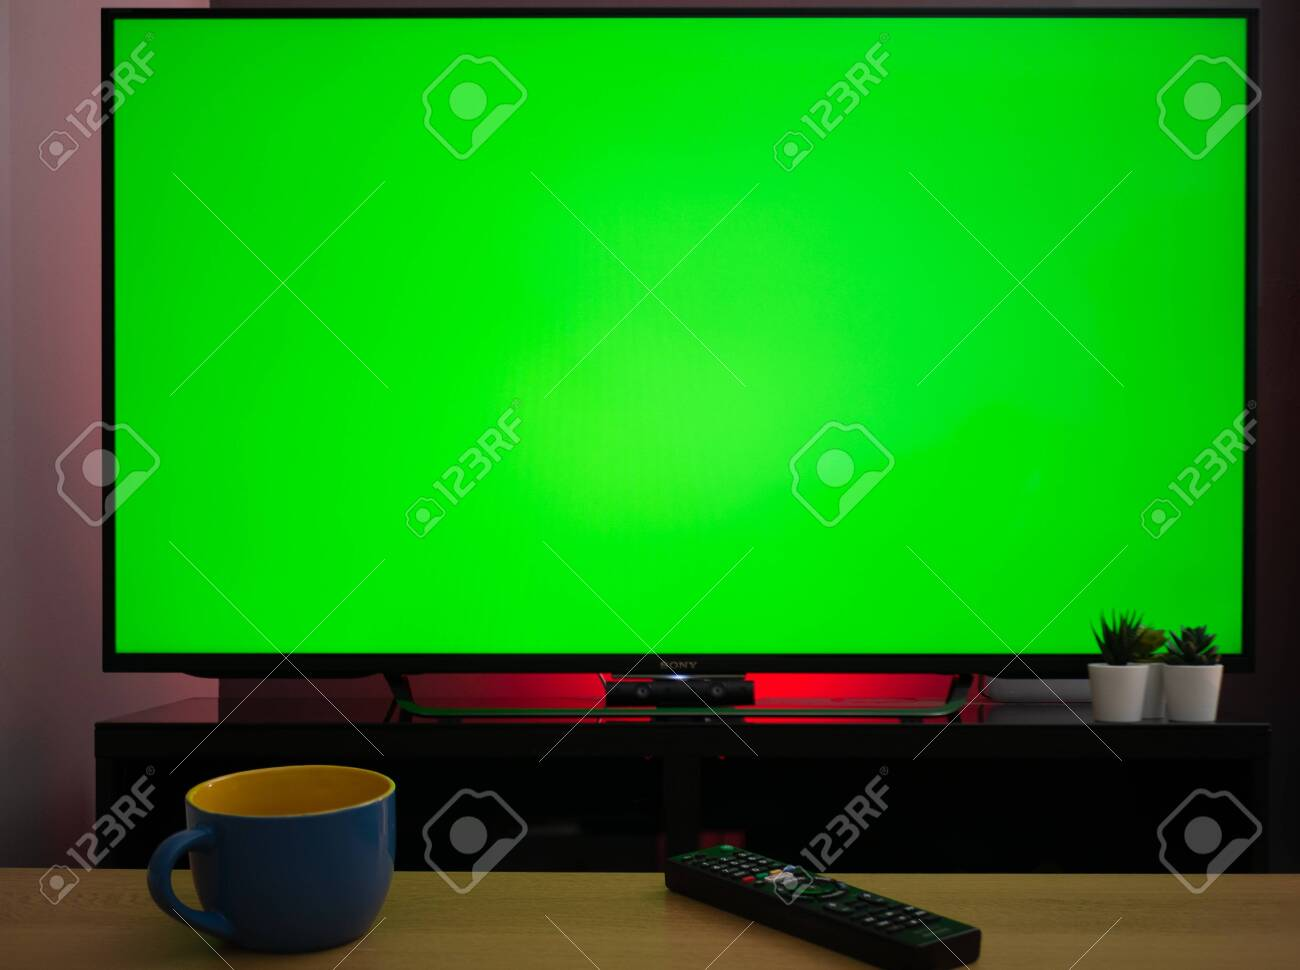 Chroma Key Green Screen Tv Television Screen In Living Room Home Stock Photo Picture And Royalty Free Image Image 144140714